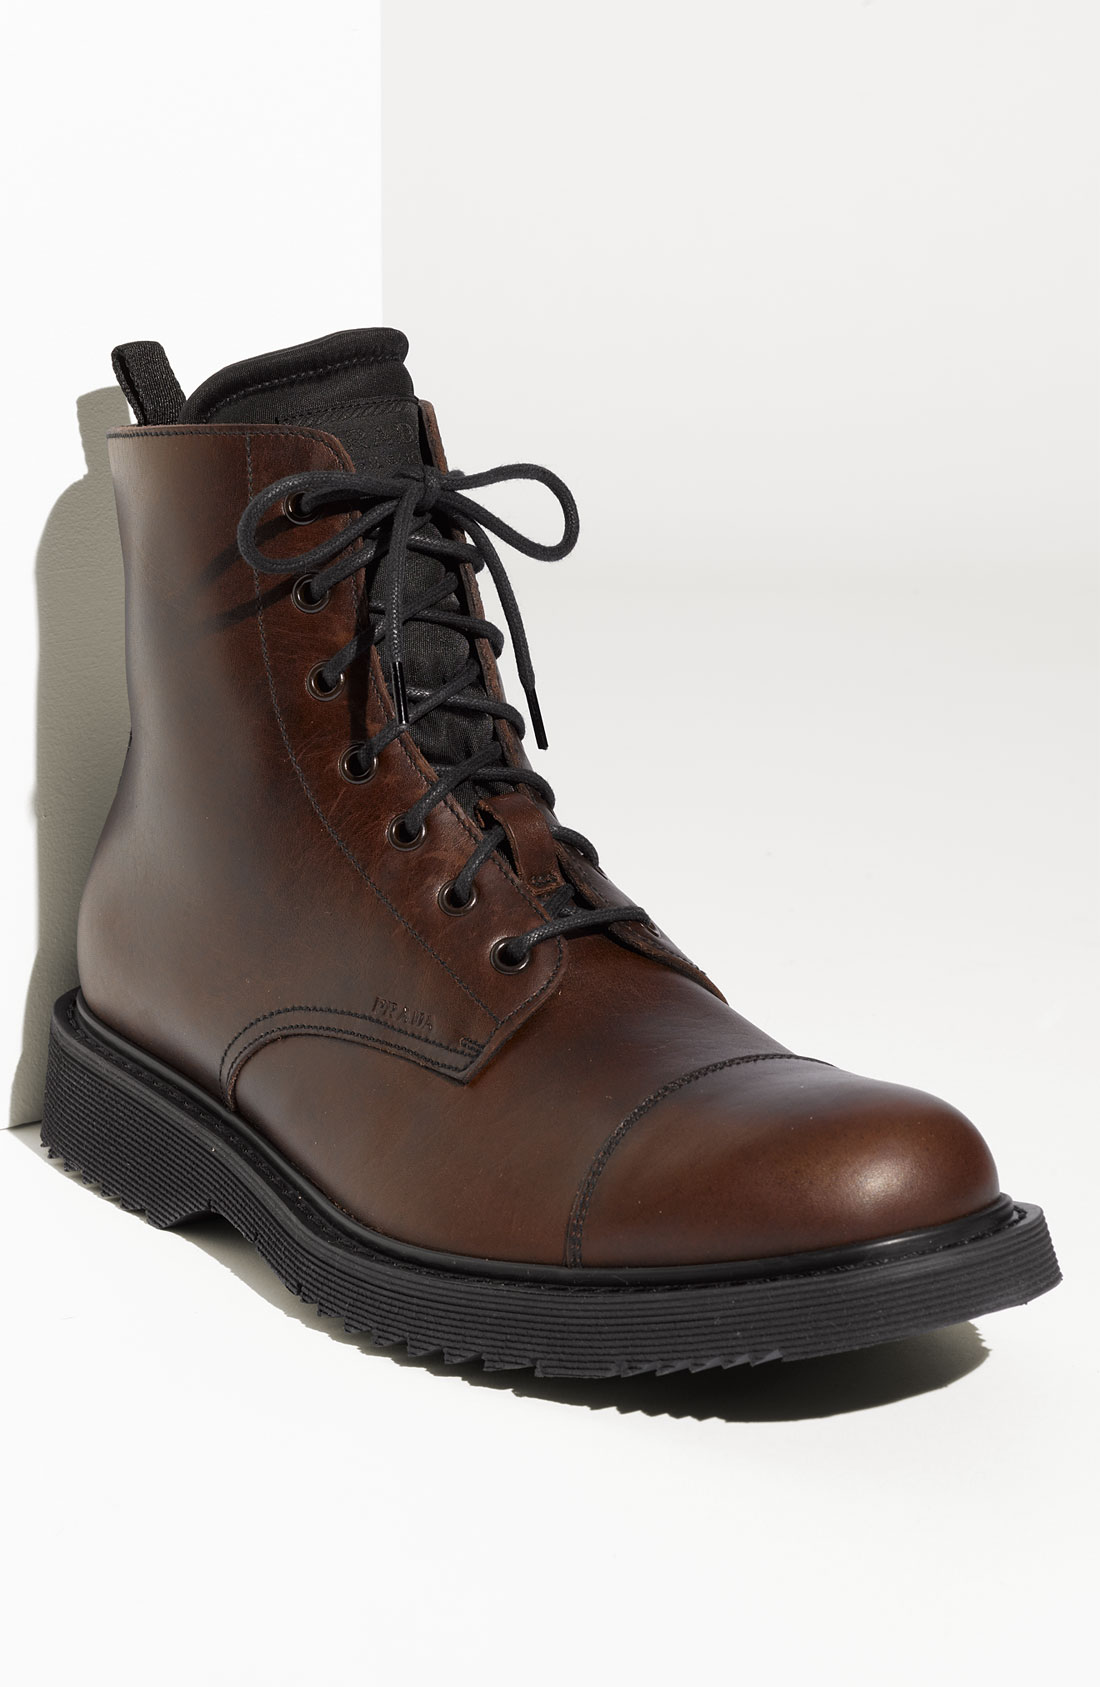 prada casual cap toe boot in brown for lyst